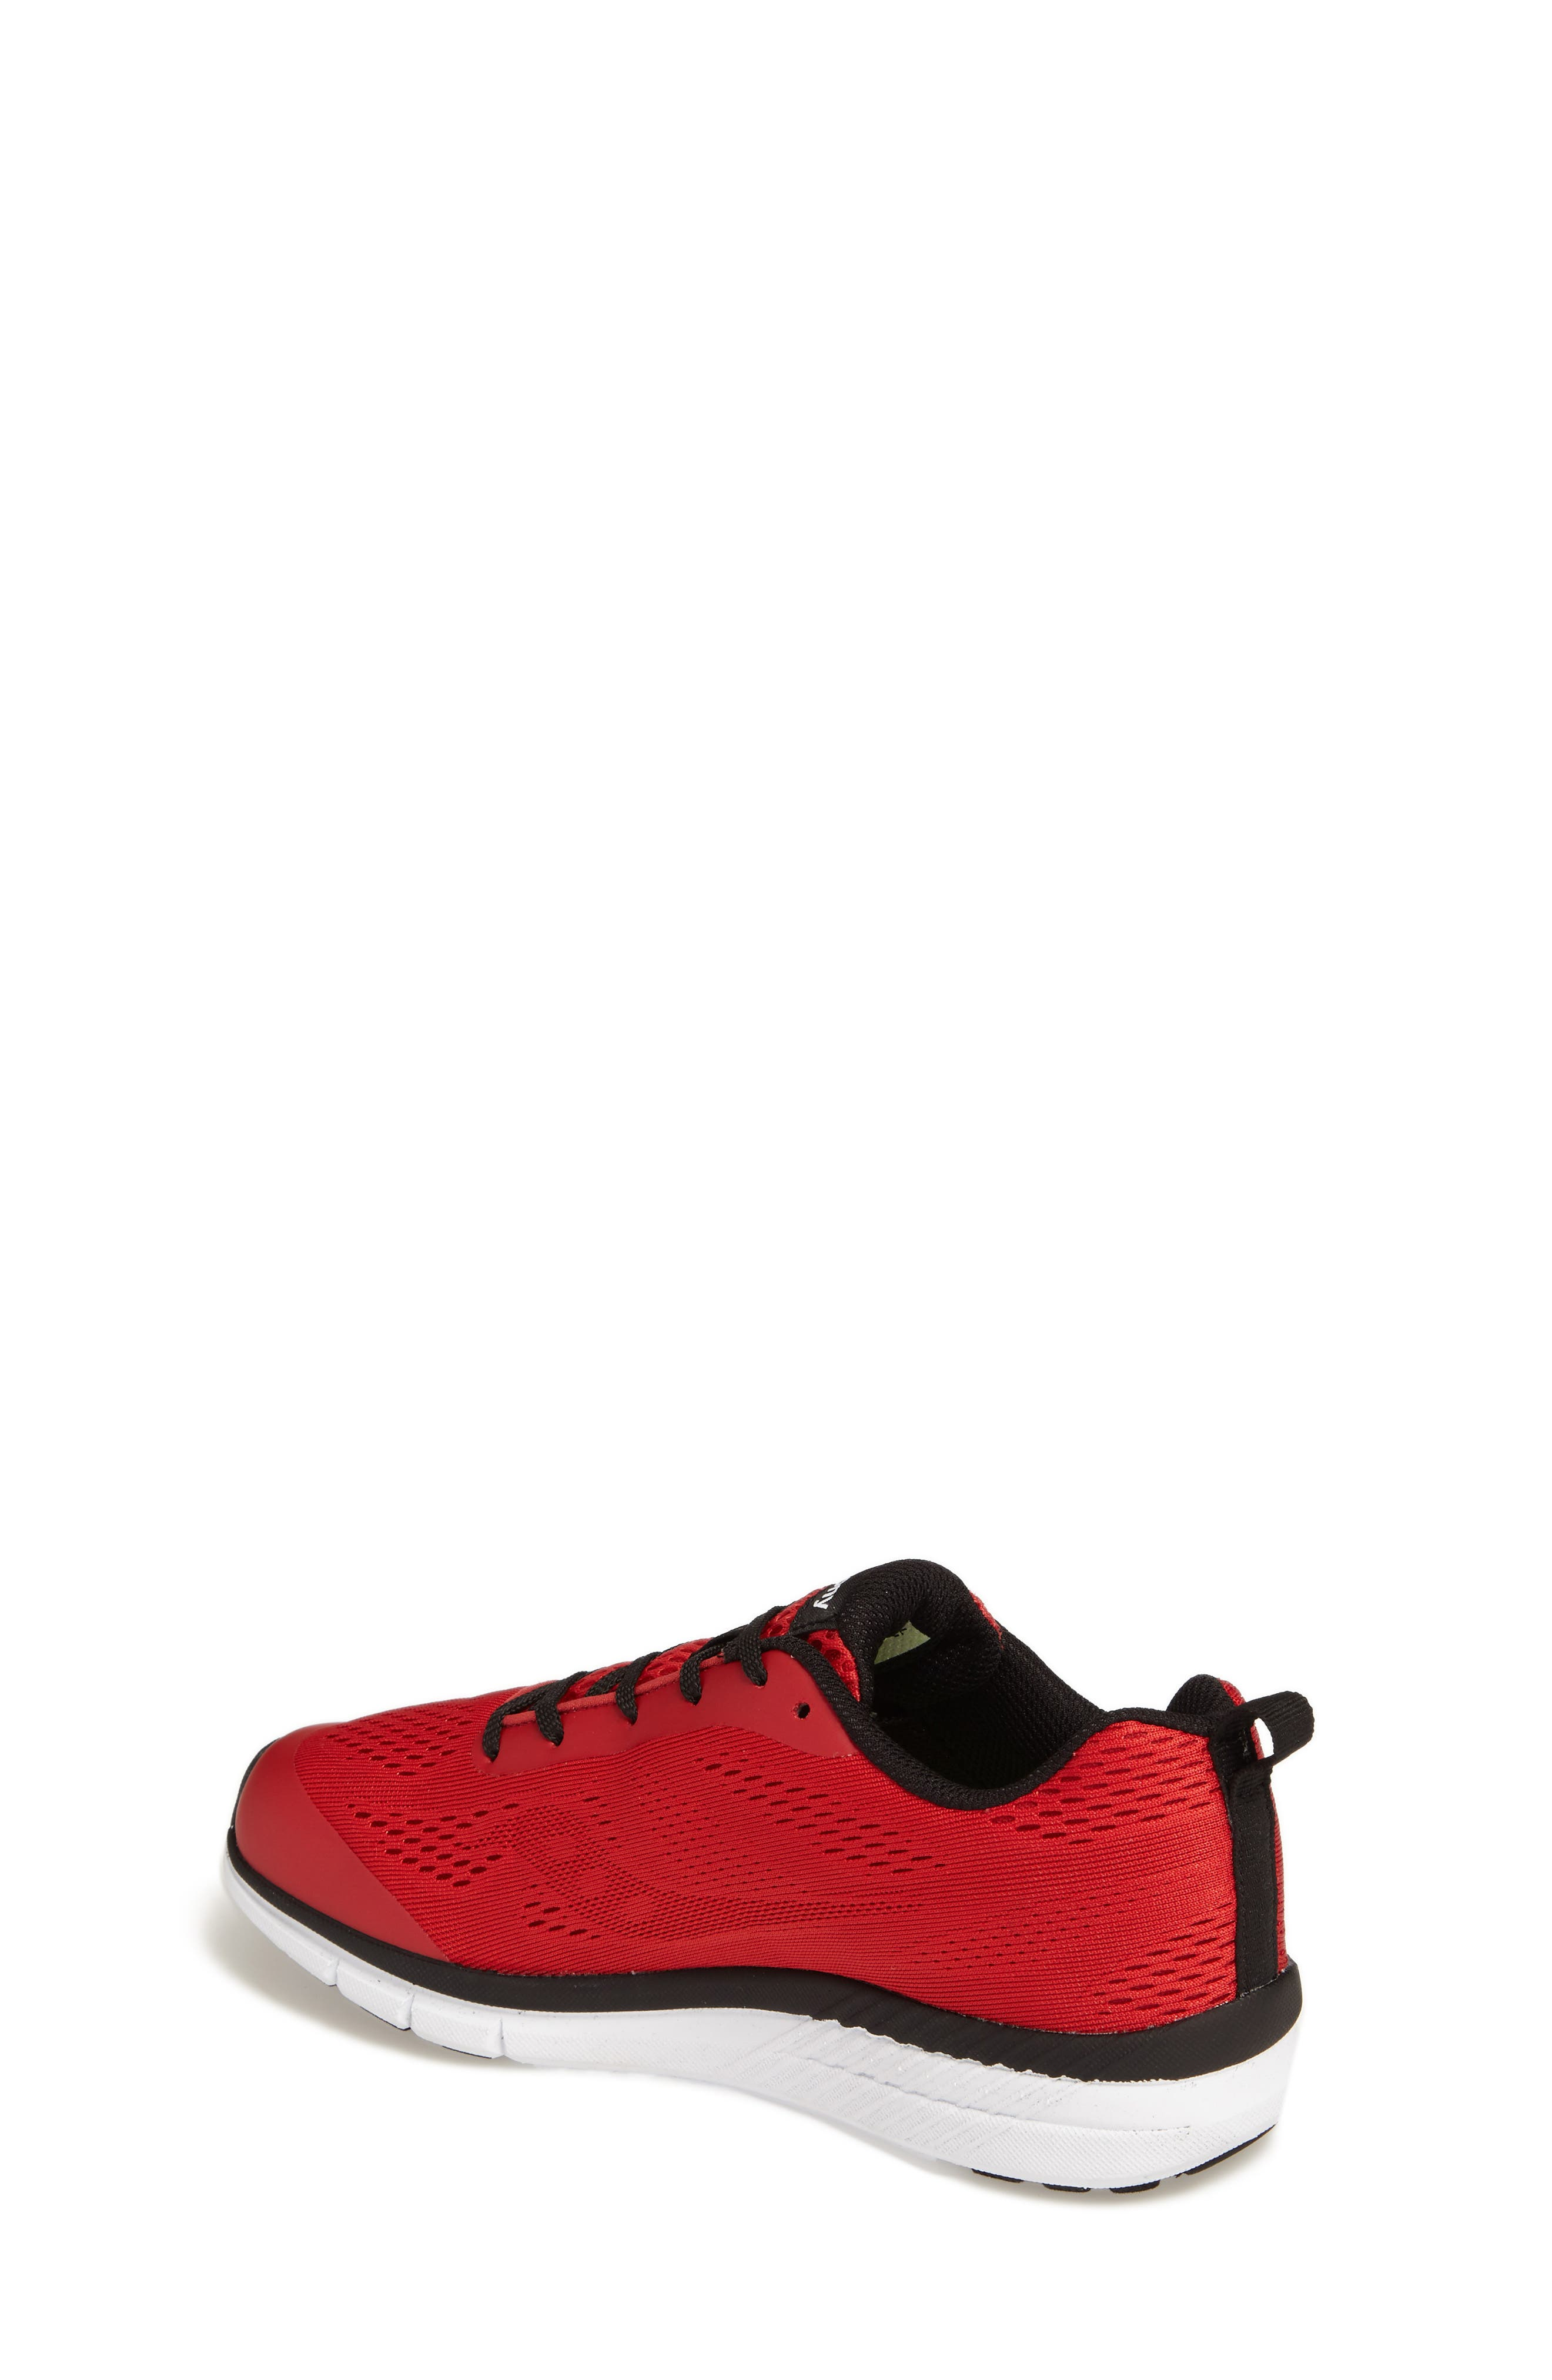 Ideal Sneaker,                             Alternate thumbnail 2, color,                             Red